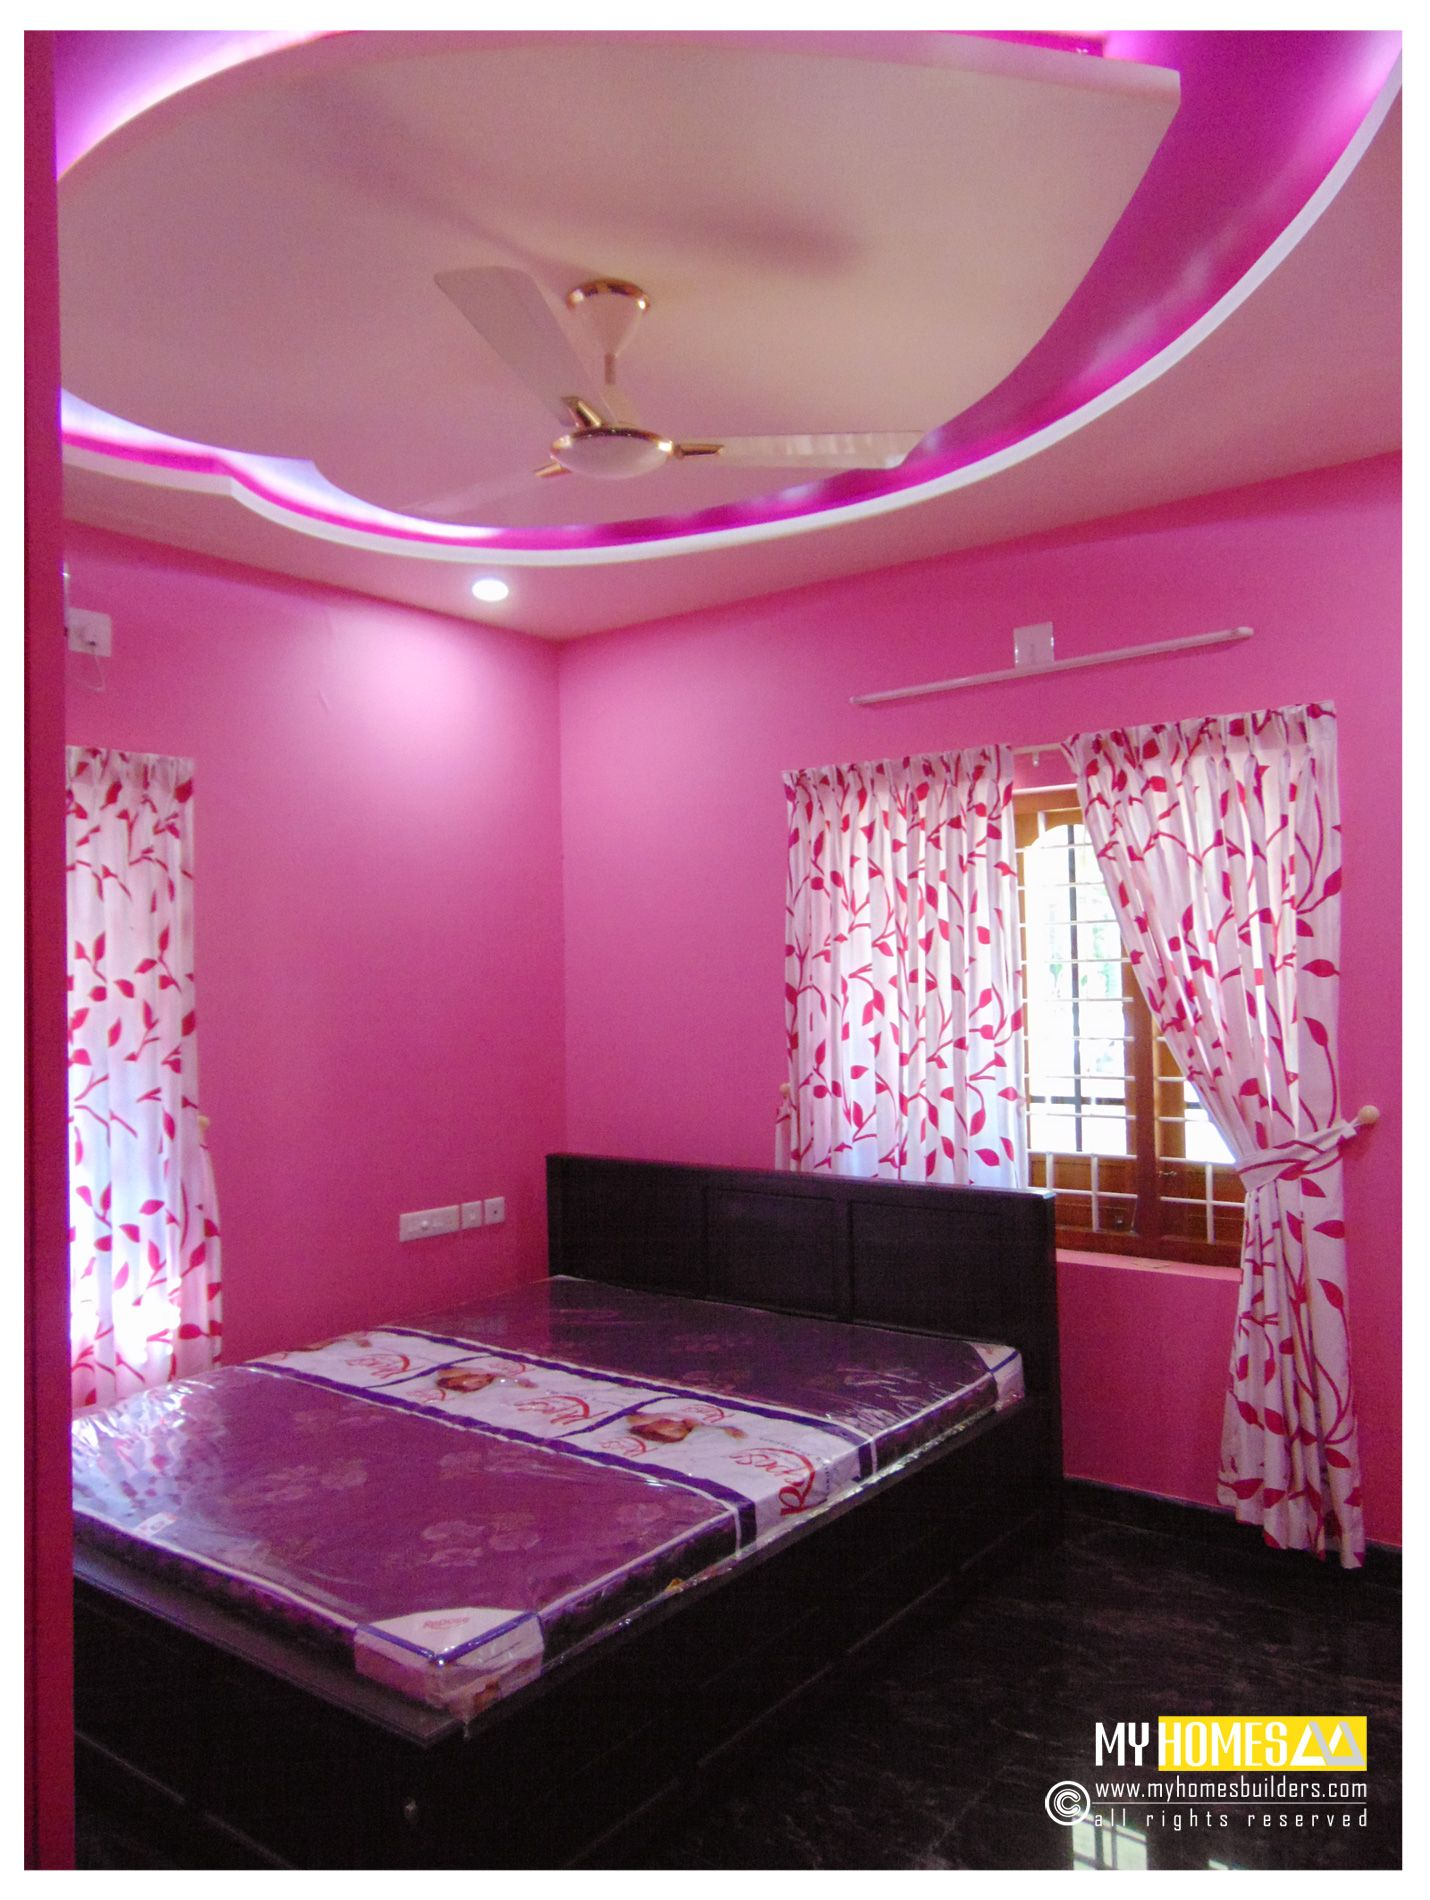 Kerala bedroom interior designs best bed room interior for Interior design ideas bedroom